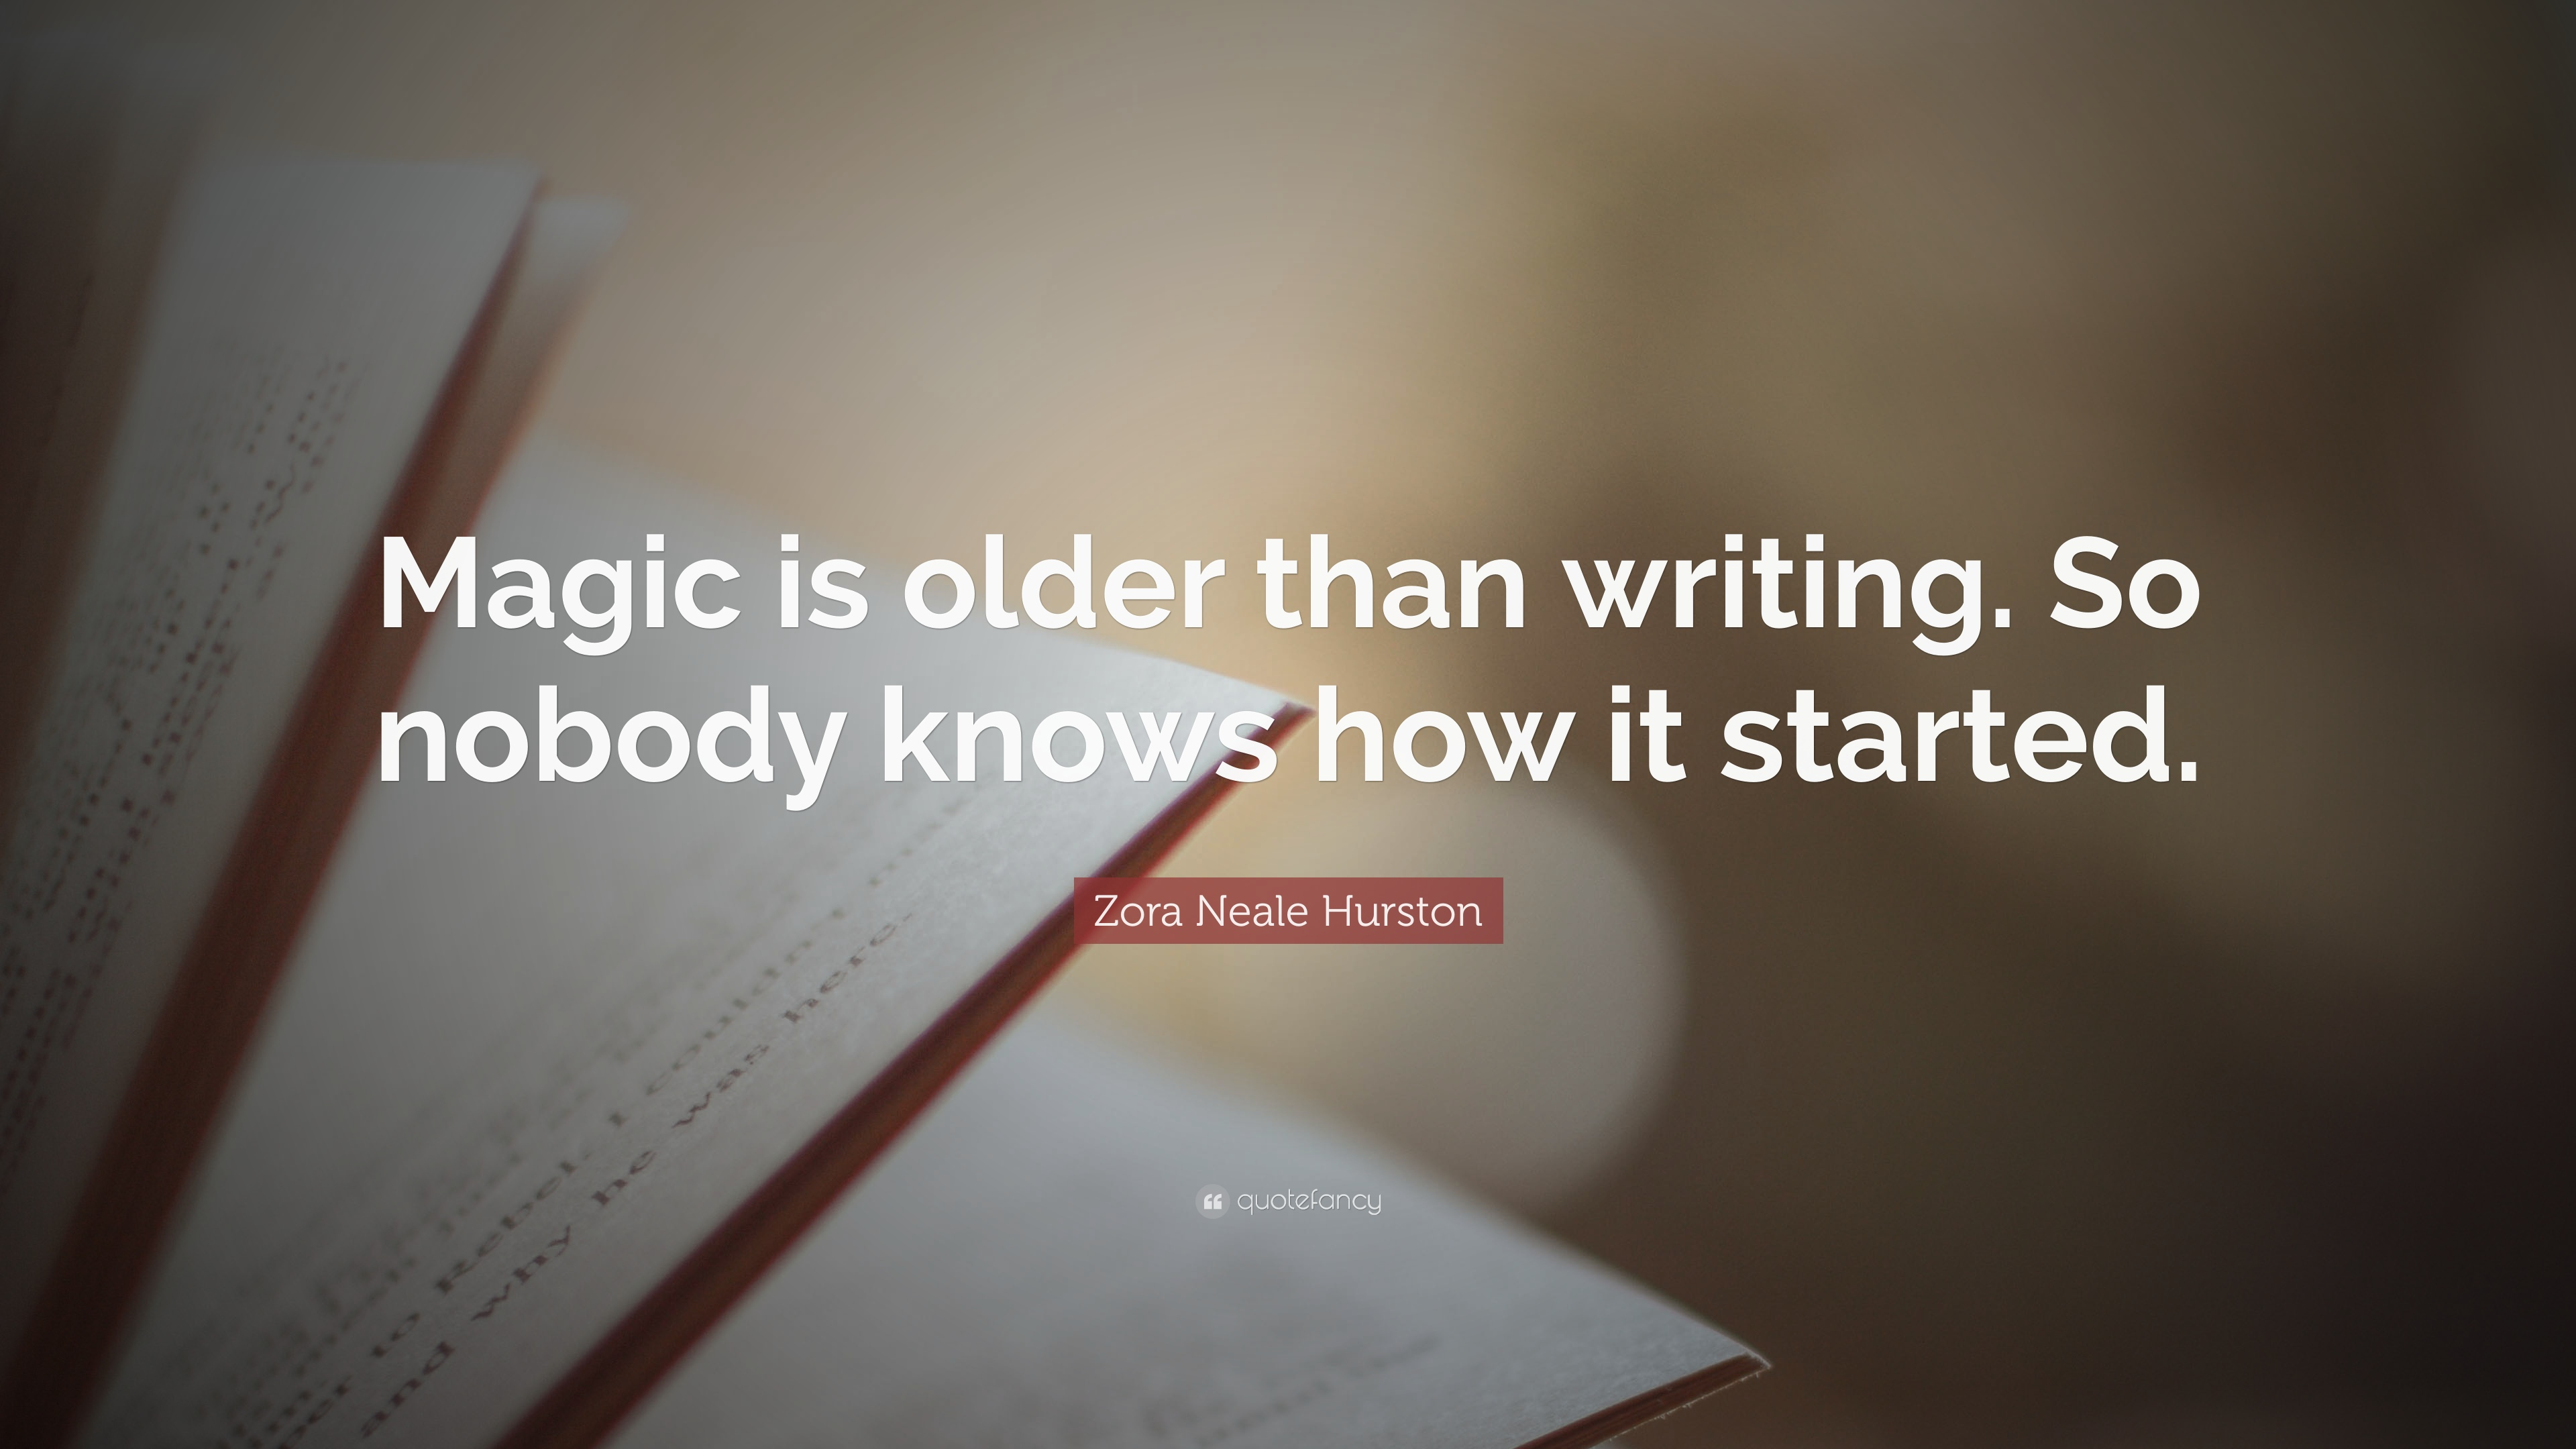 Zora Neale Hurston Quote Magic Is Older Than Writing So Nobody